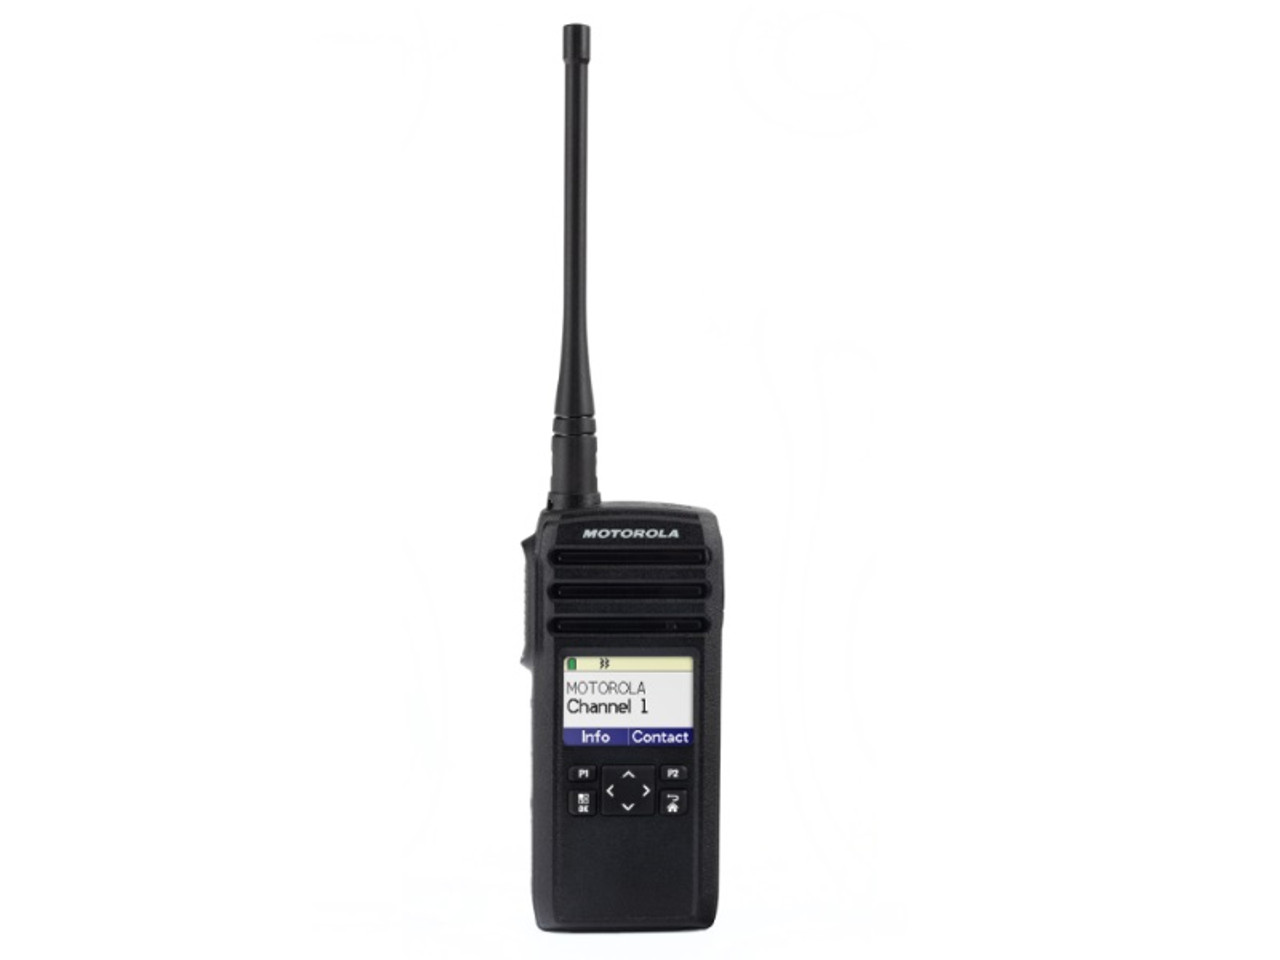 The DTR600 700 Is A 900 MHz 1 Watt Radio That Provides Greater Coverage Than